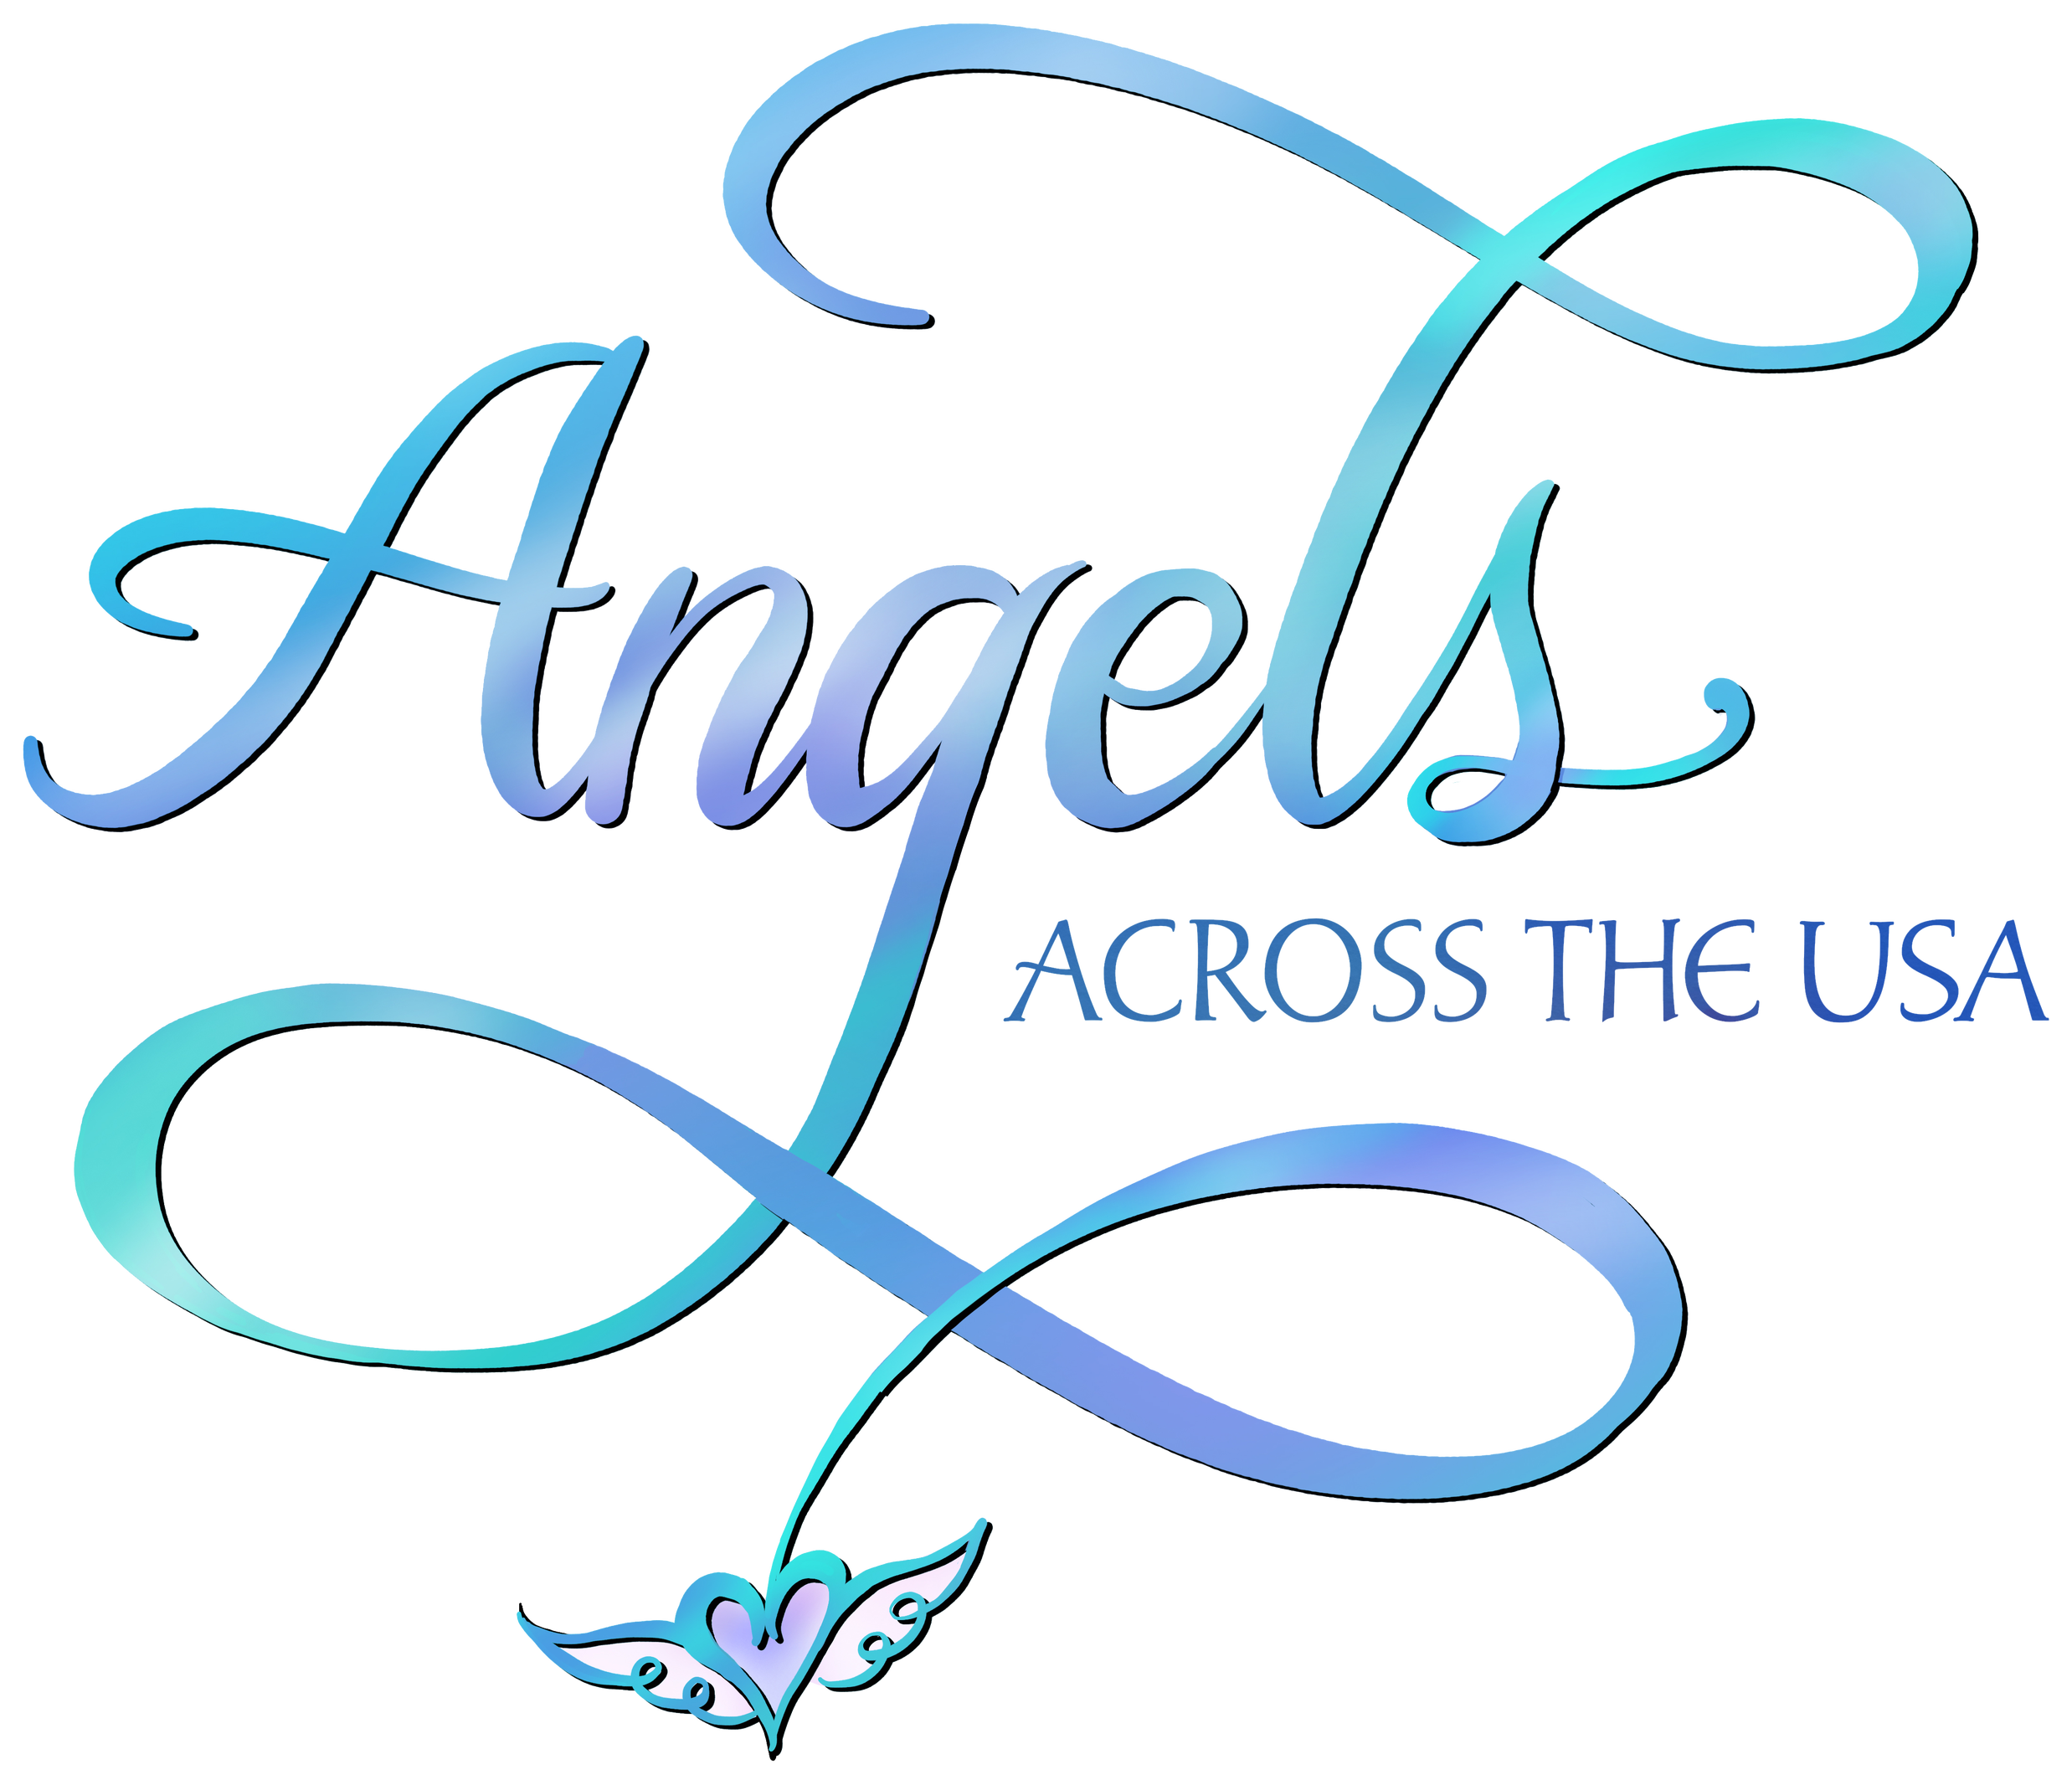 Angels Across the USA